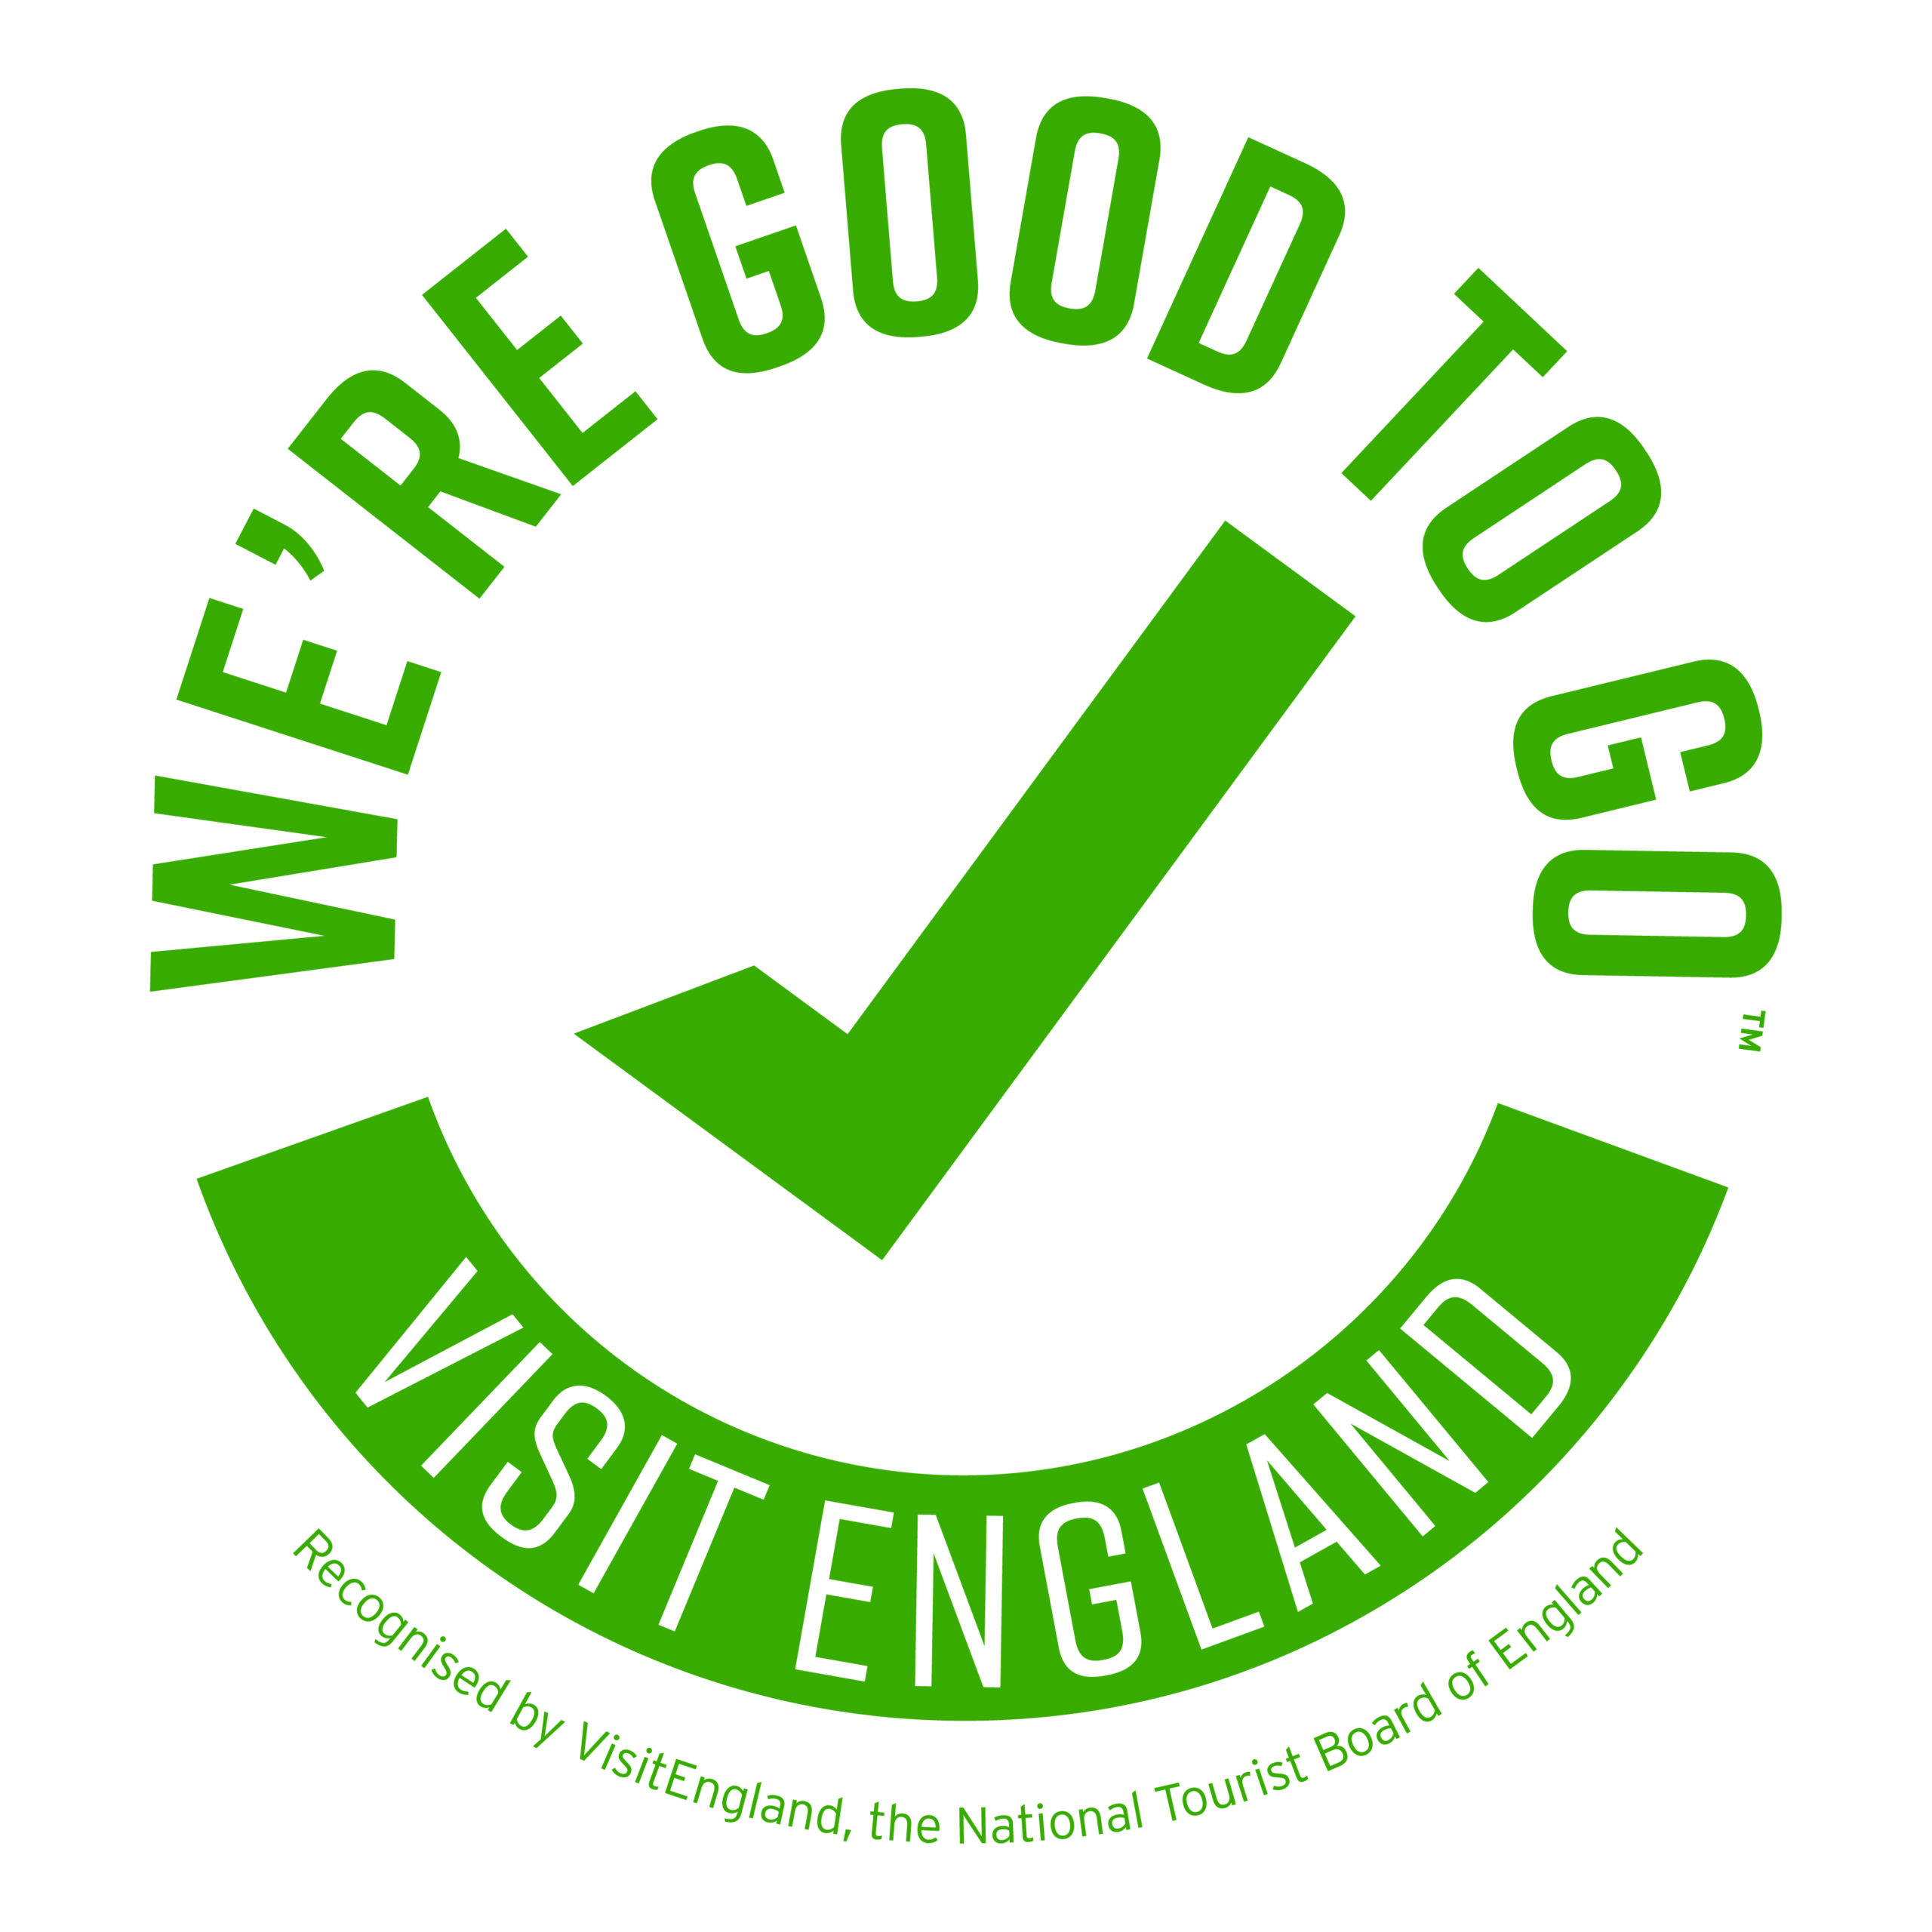 The logo for Visit England's We're Good To Go standard